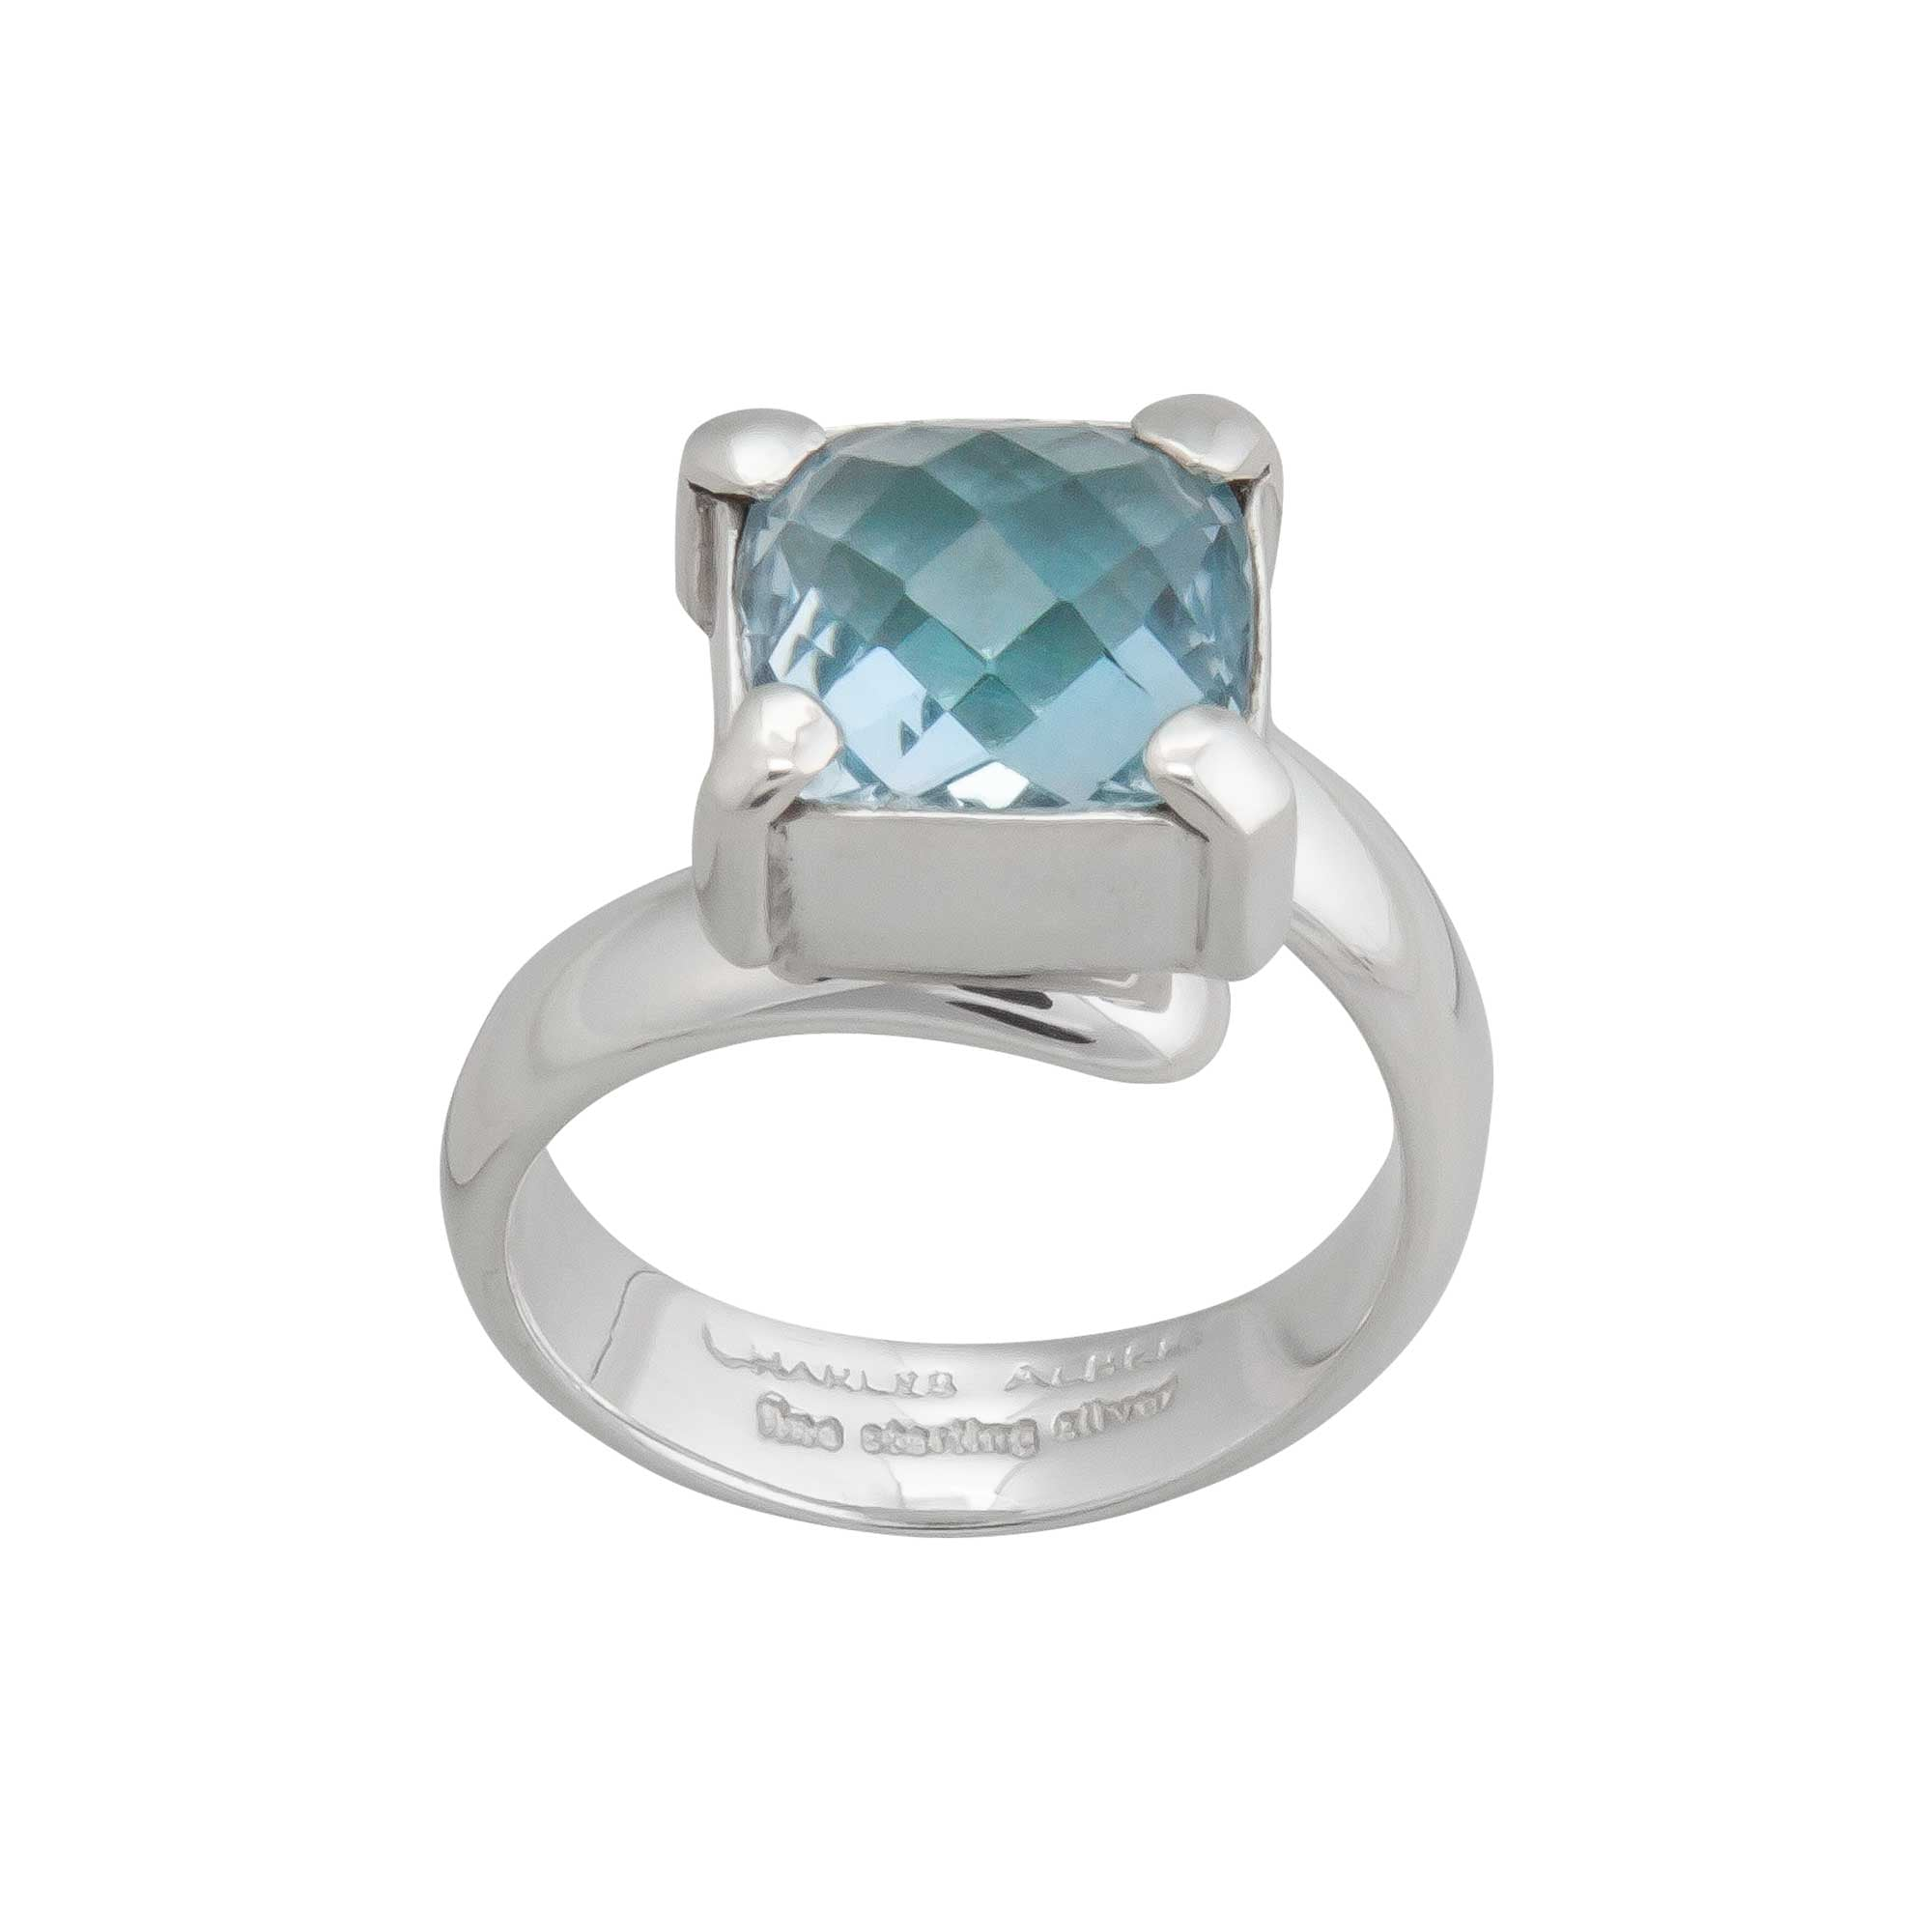 Sterling Silver Blue Topaz Adjustable Bezel and Prong set Ring | Charles Albert Jewelry